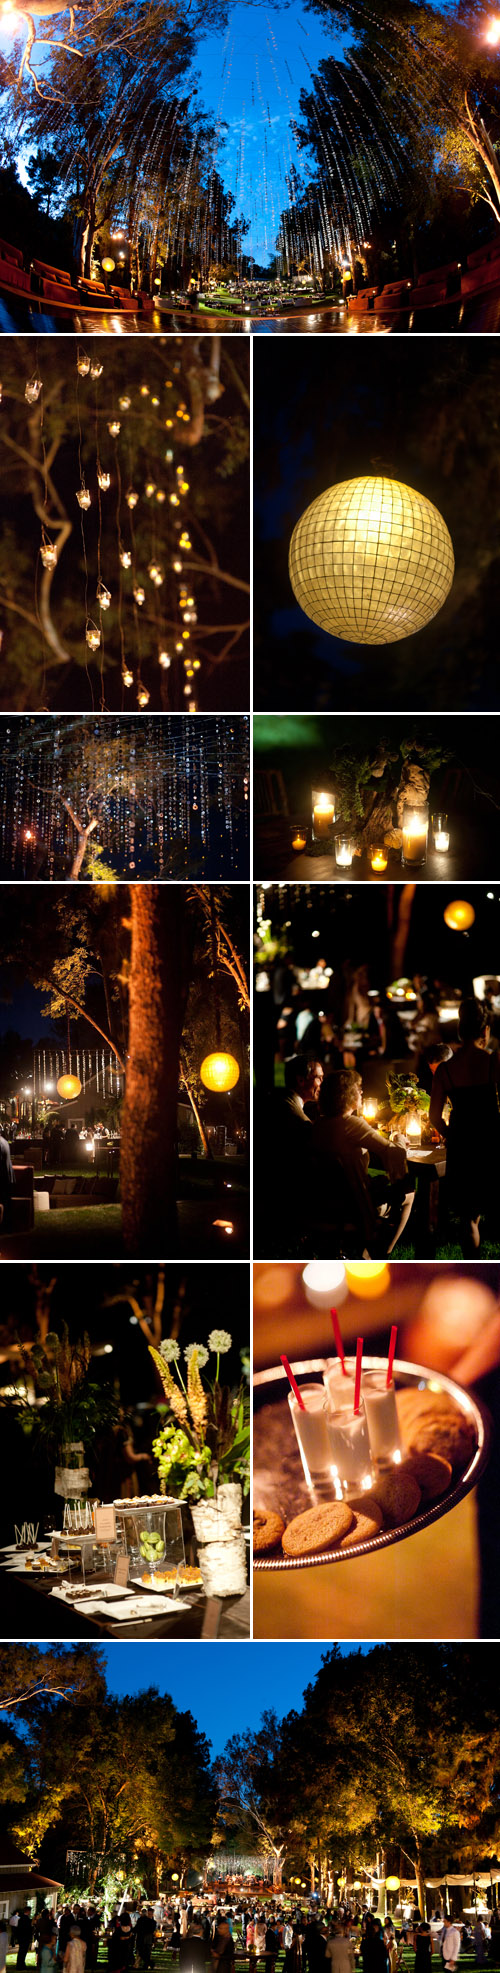 elegant and rustic los angeles garden party floral design and decor by Exquisite Events, images by John Solano Photography